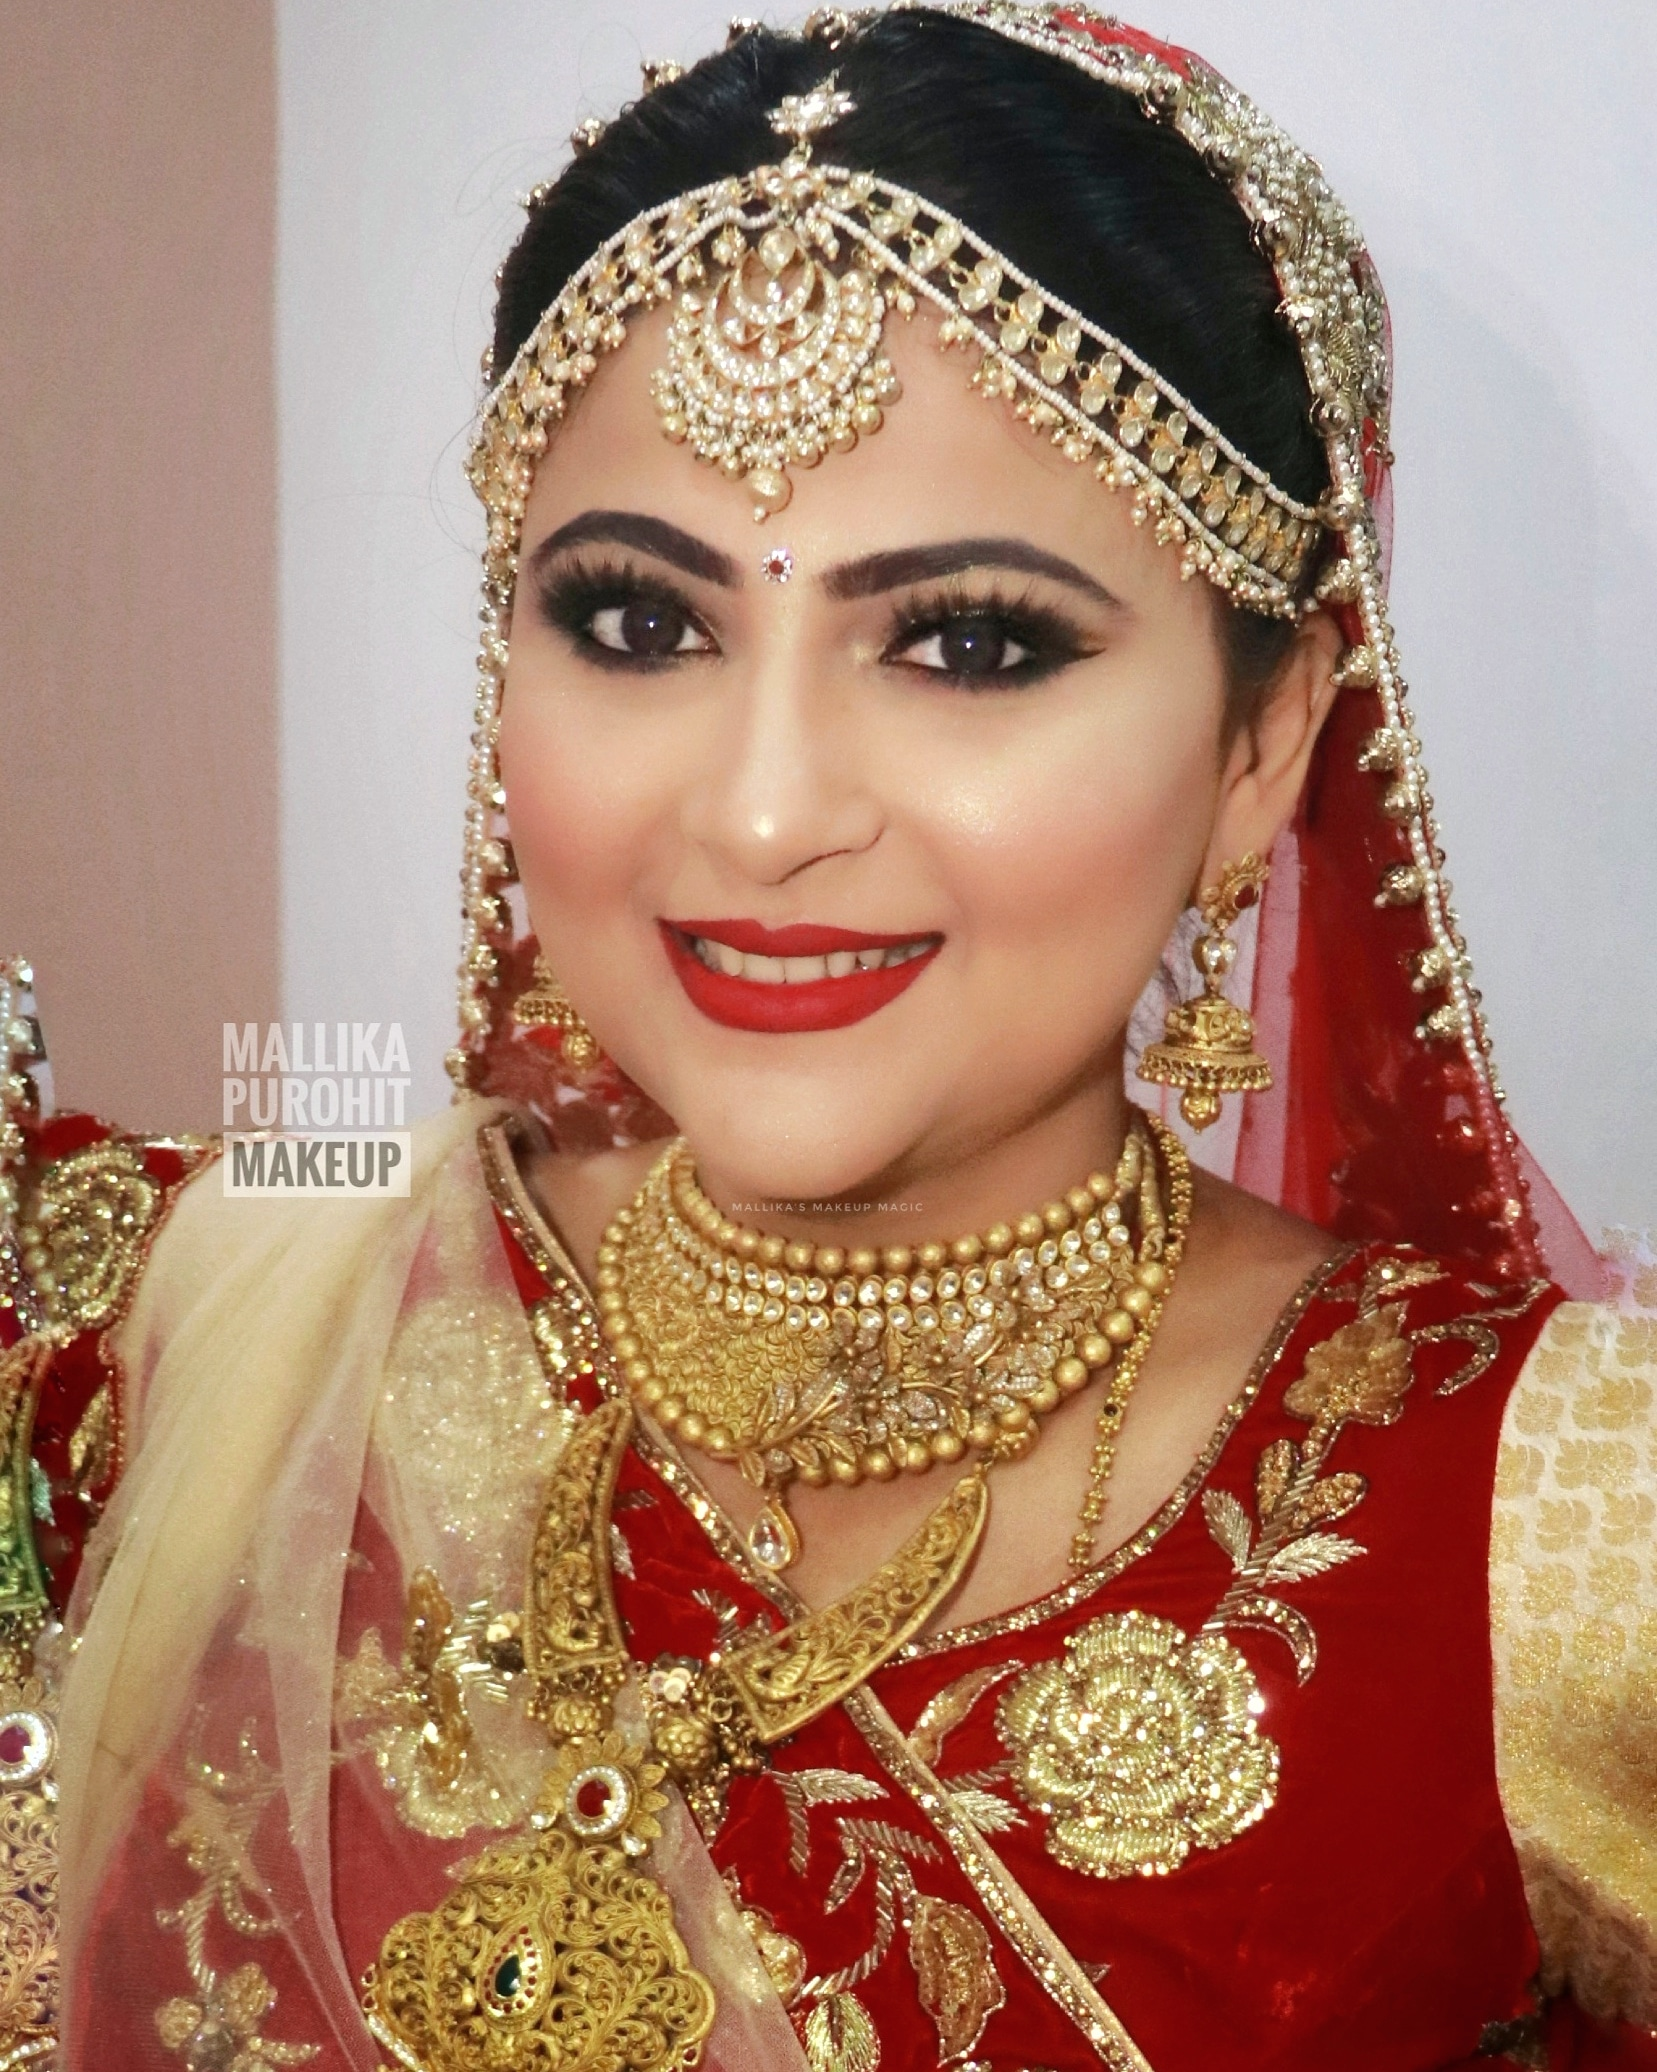 mallikas-makeup-magic-makeup-artist-mumbai